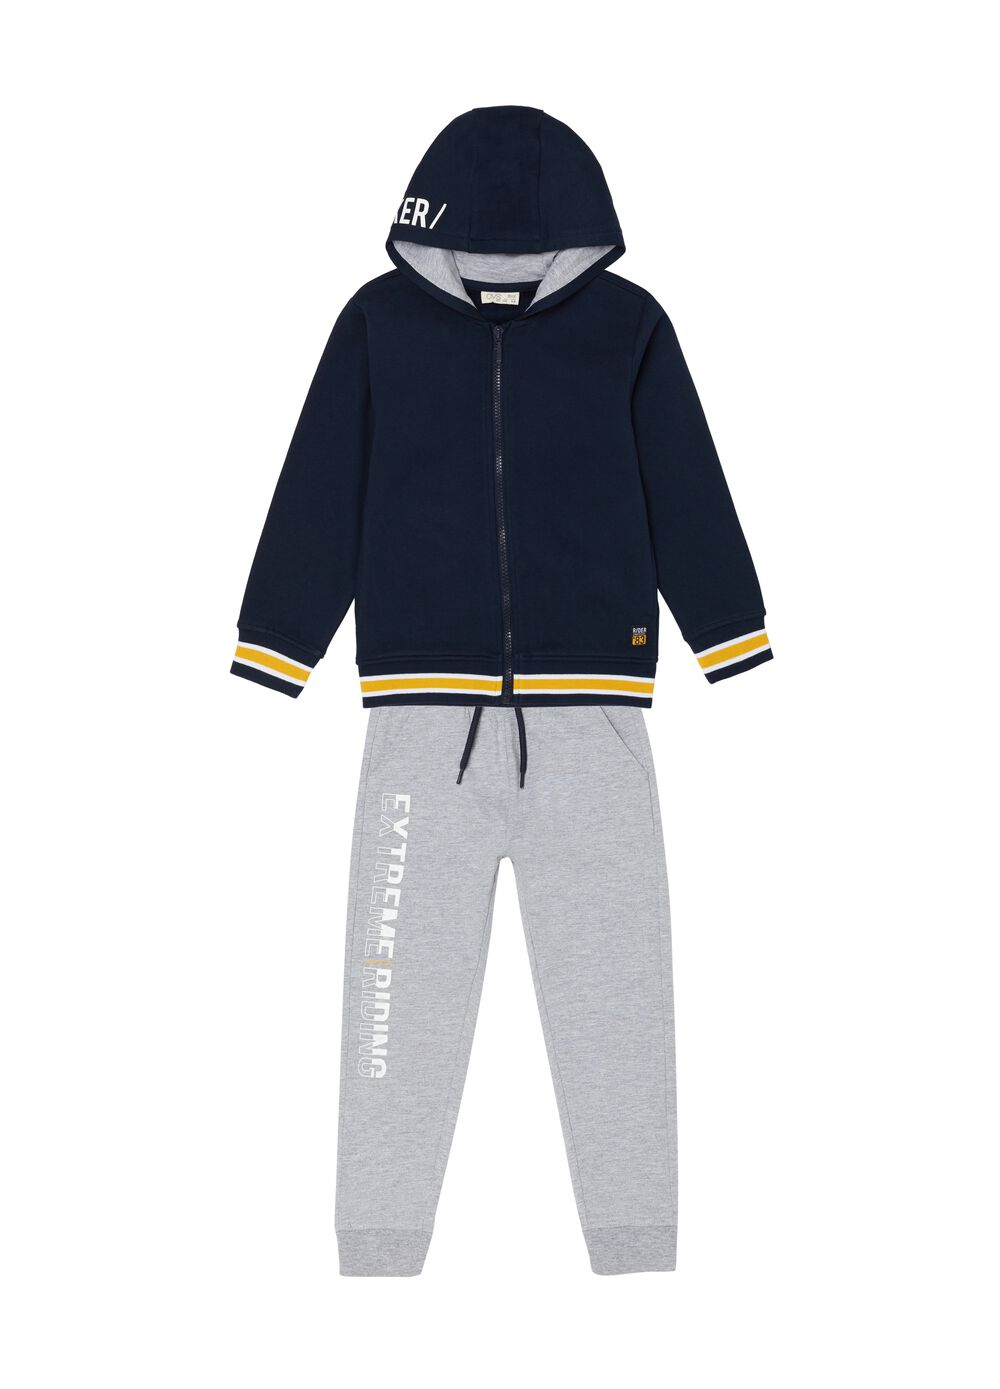 Lettering sweatshirt and trousers jogging set